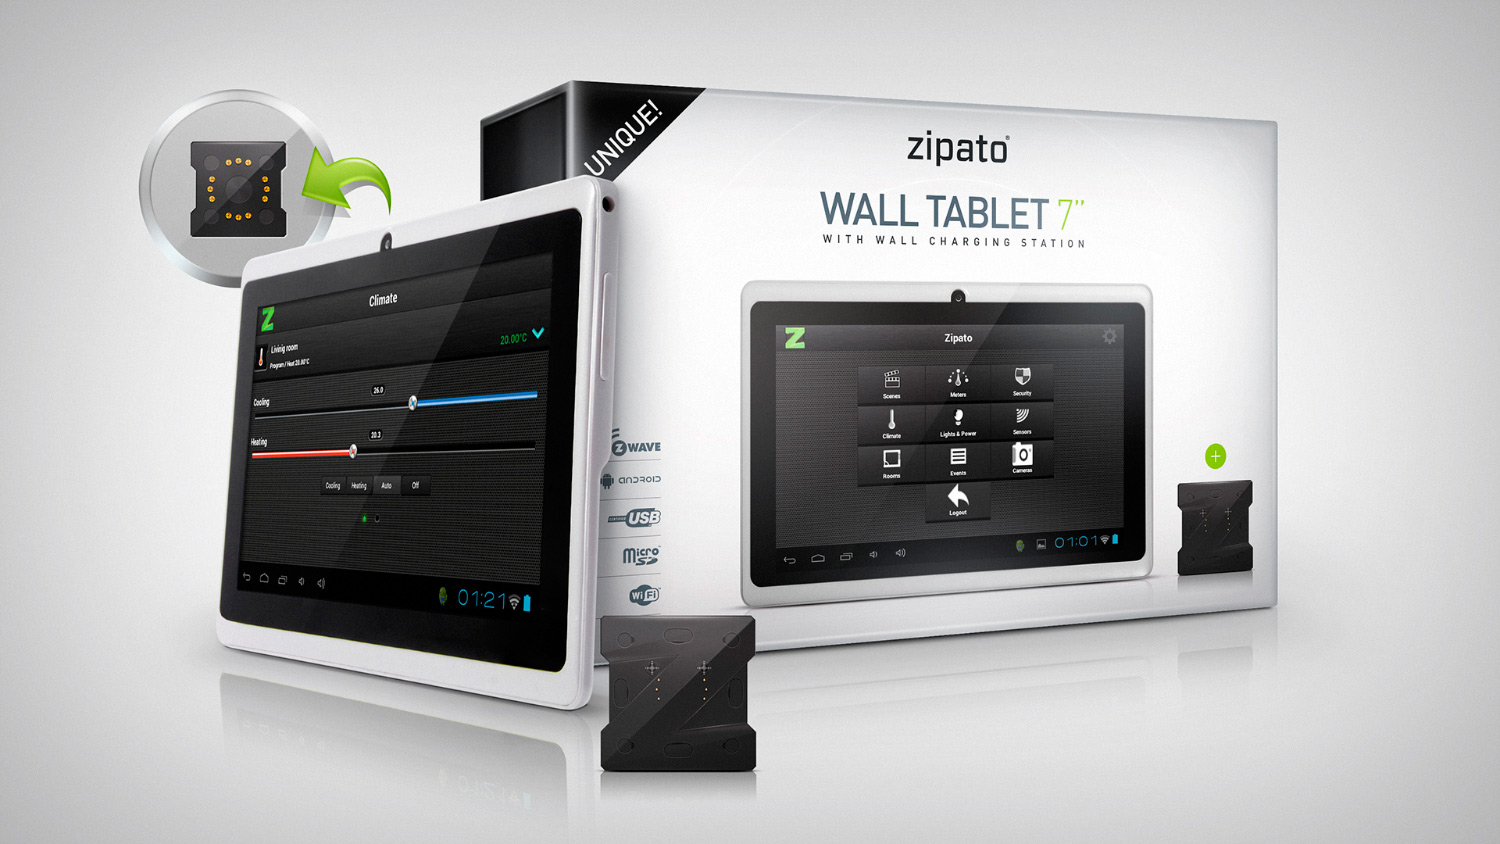 design zipato wall tablet with wall station. Black Bedroom Furniture Sets. Home Design Ideas